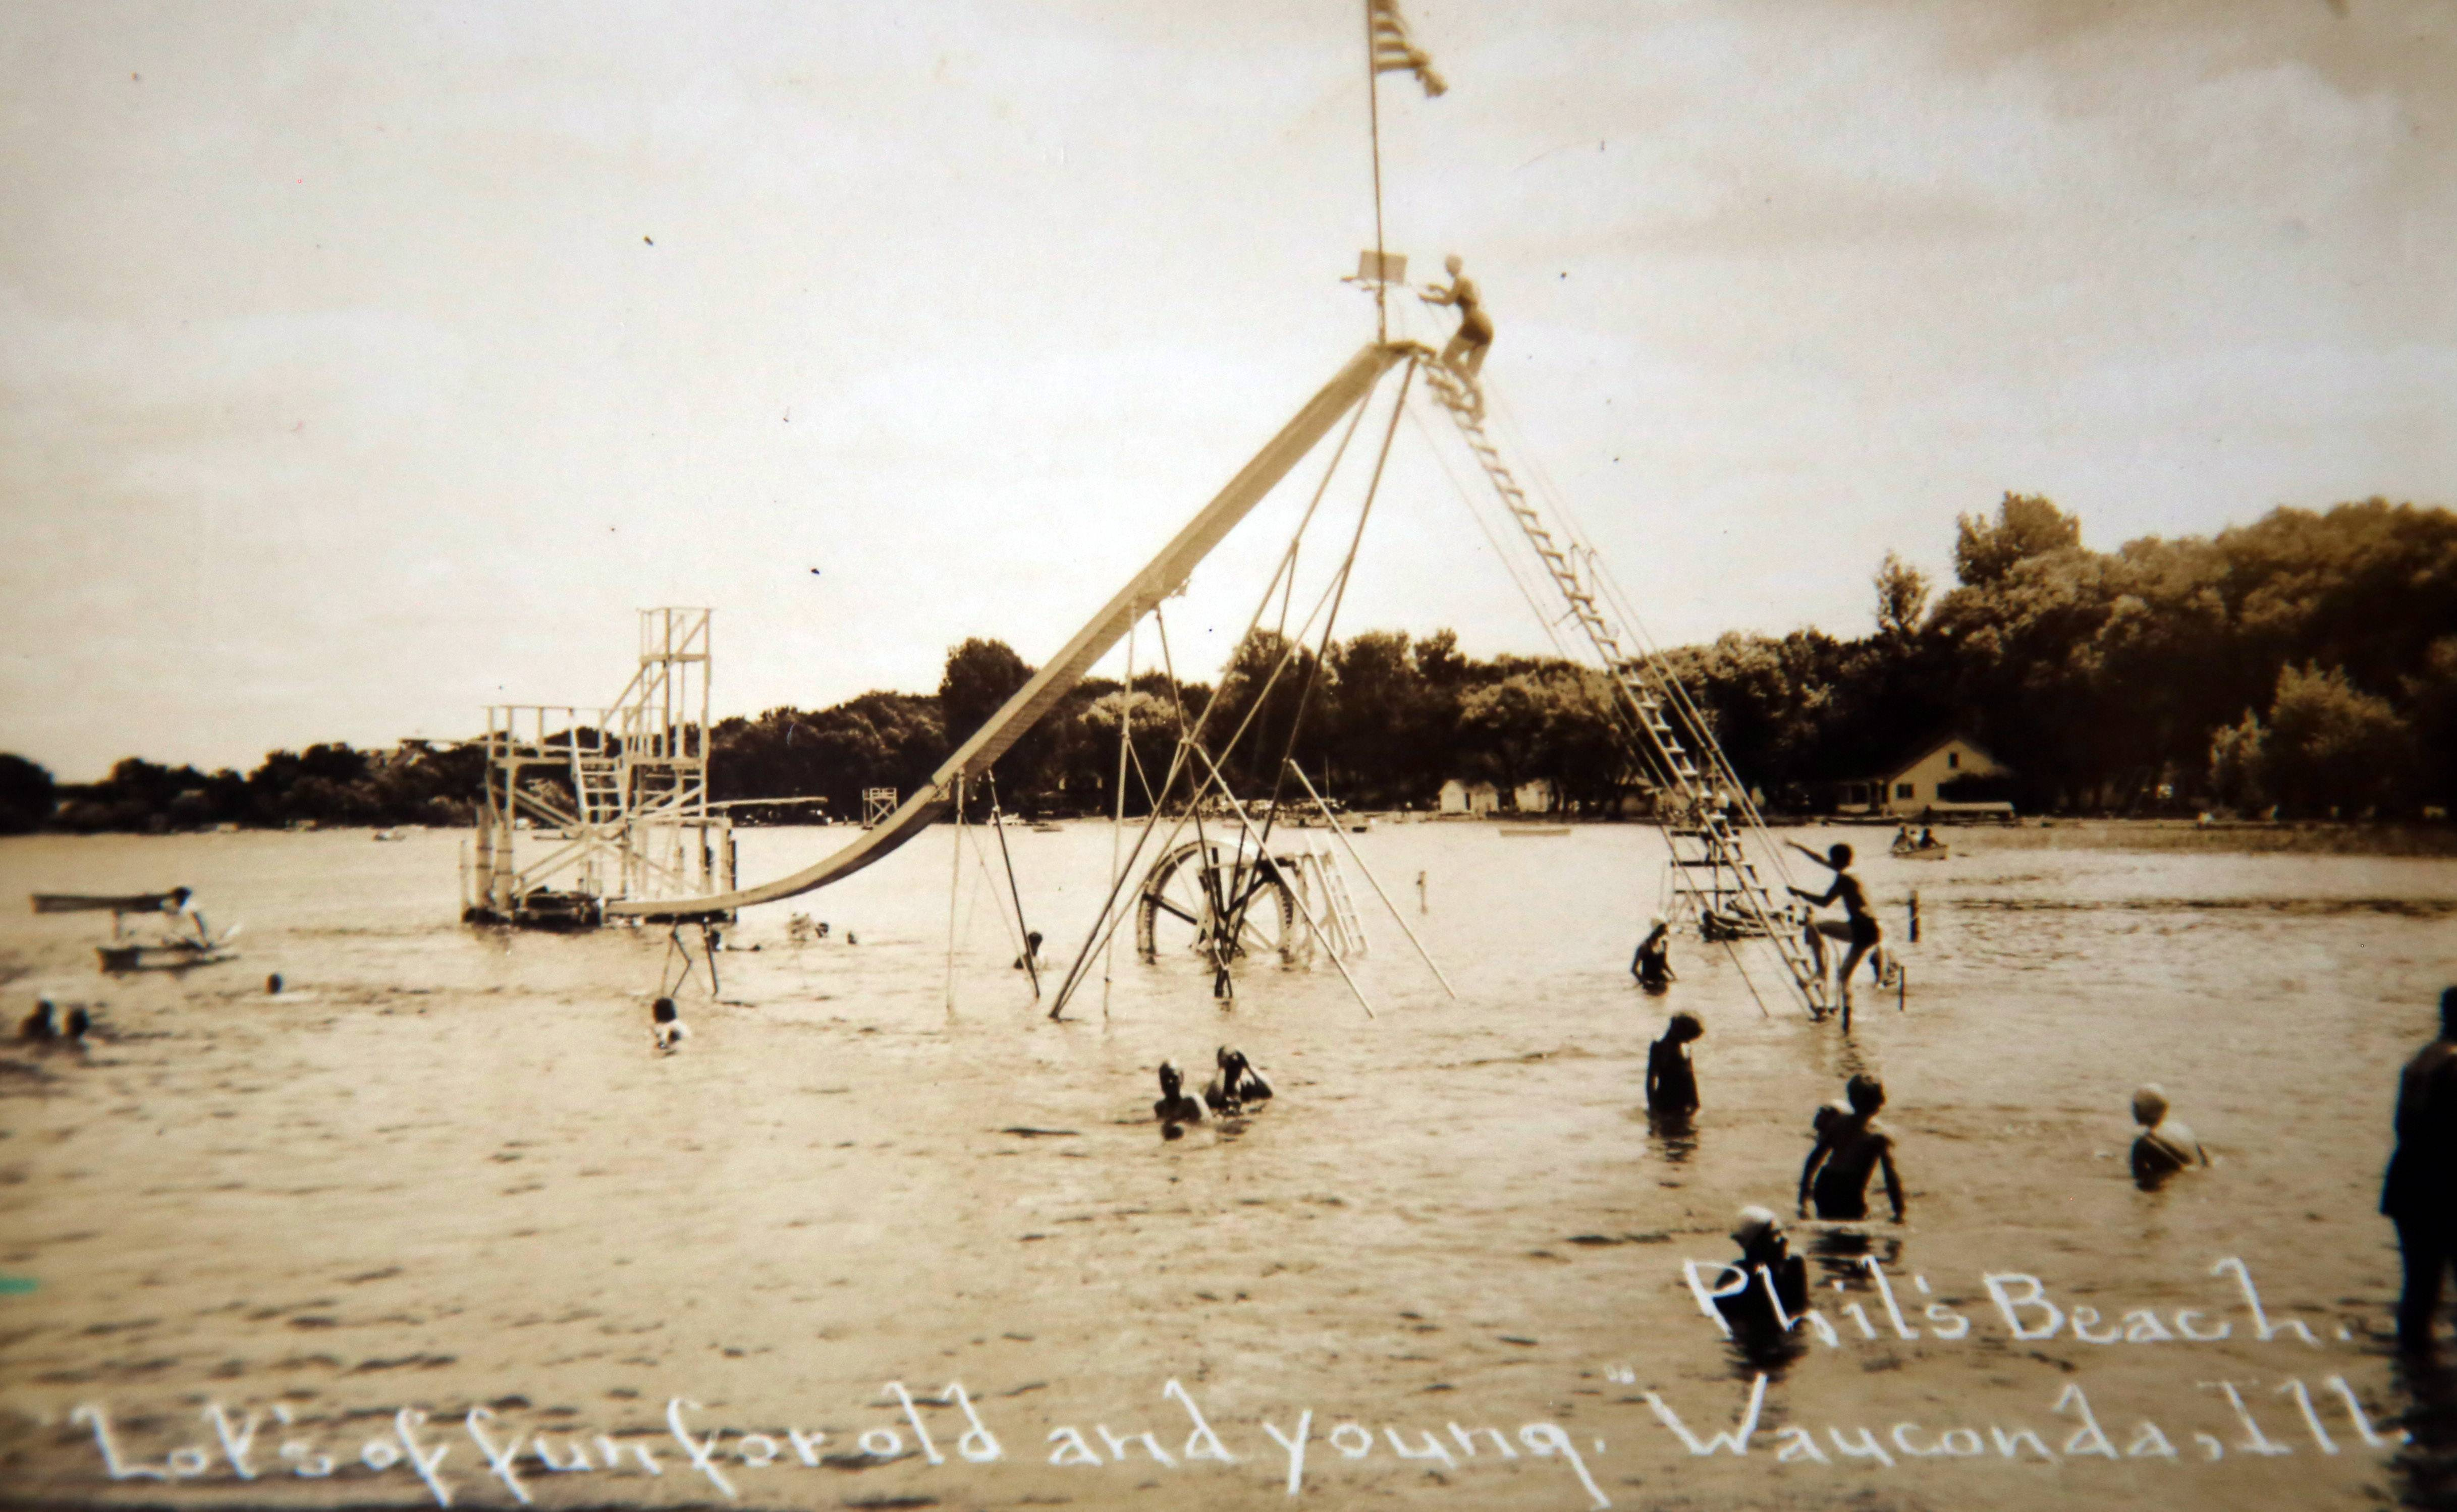 Phil's Beach in Wauconda, circa 1940. Once a popular recreation area, the beach has been closed to the public since 1990.